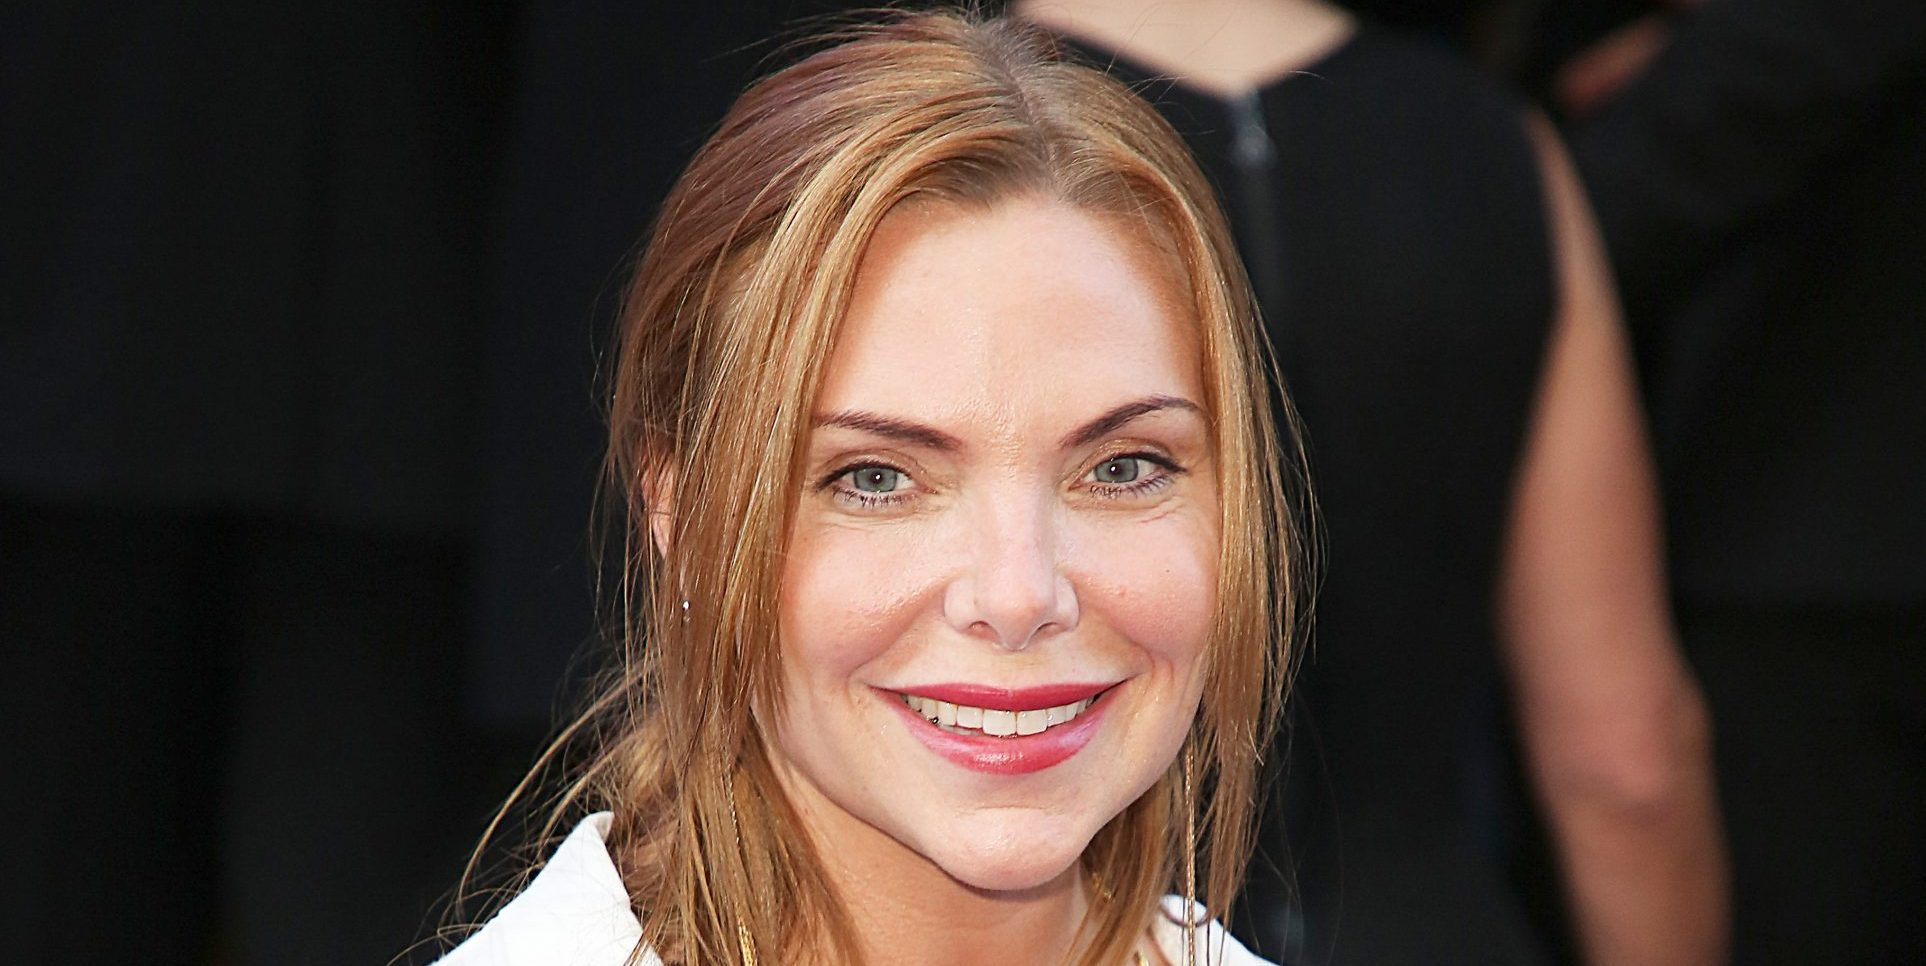 Former EastEnders actress Samantha Womack to star in Dial M for Murder